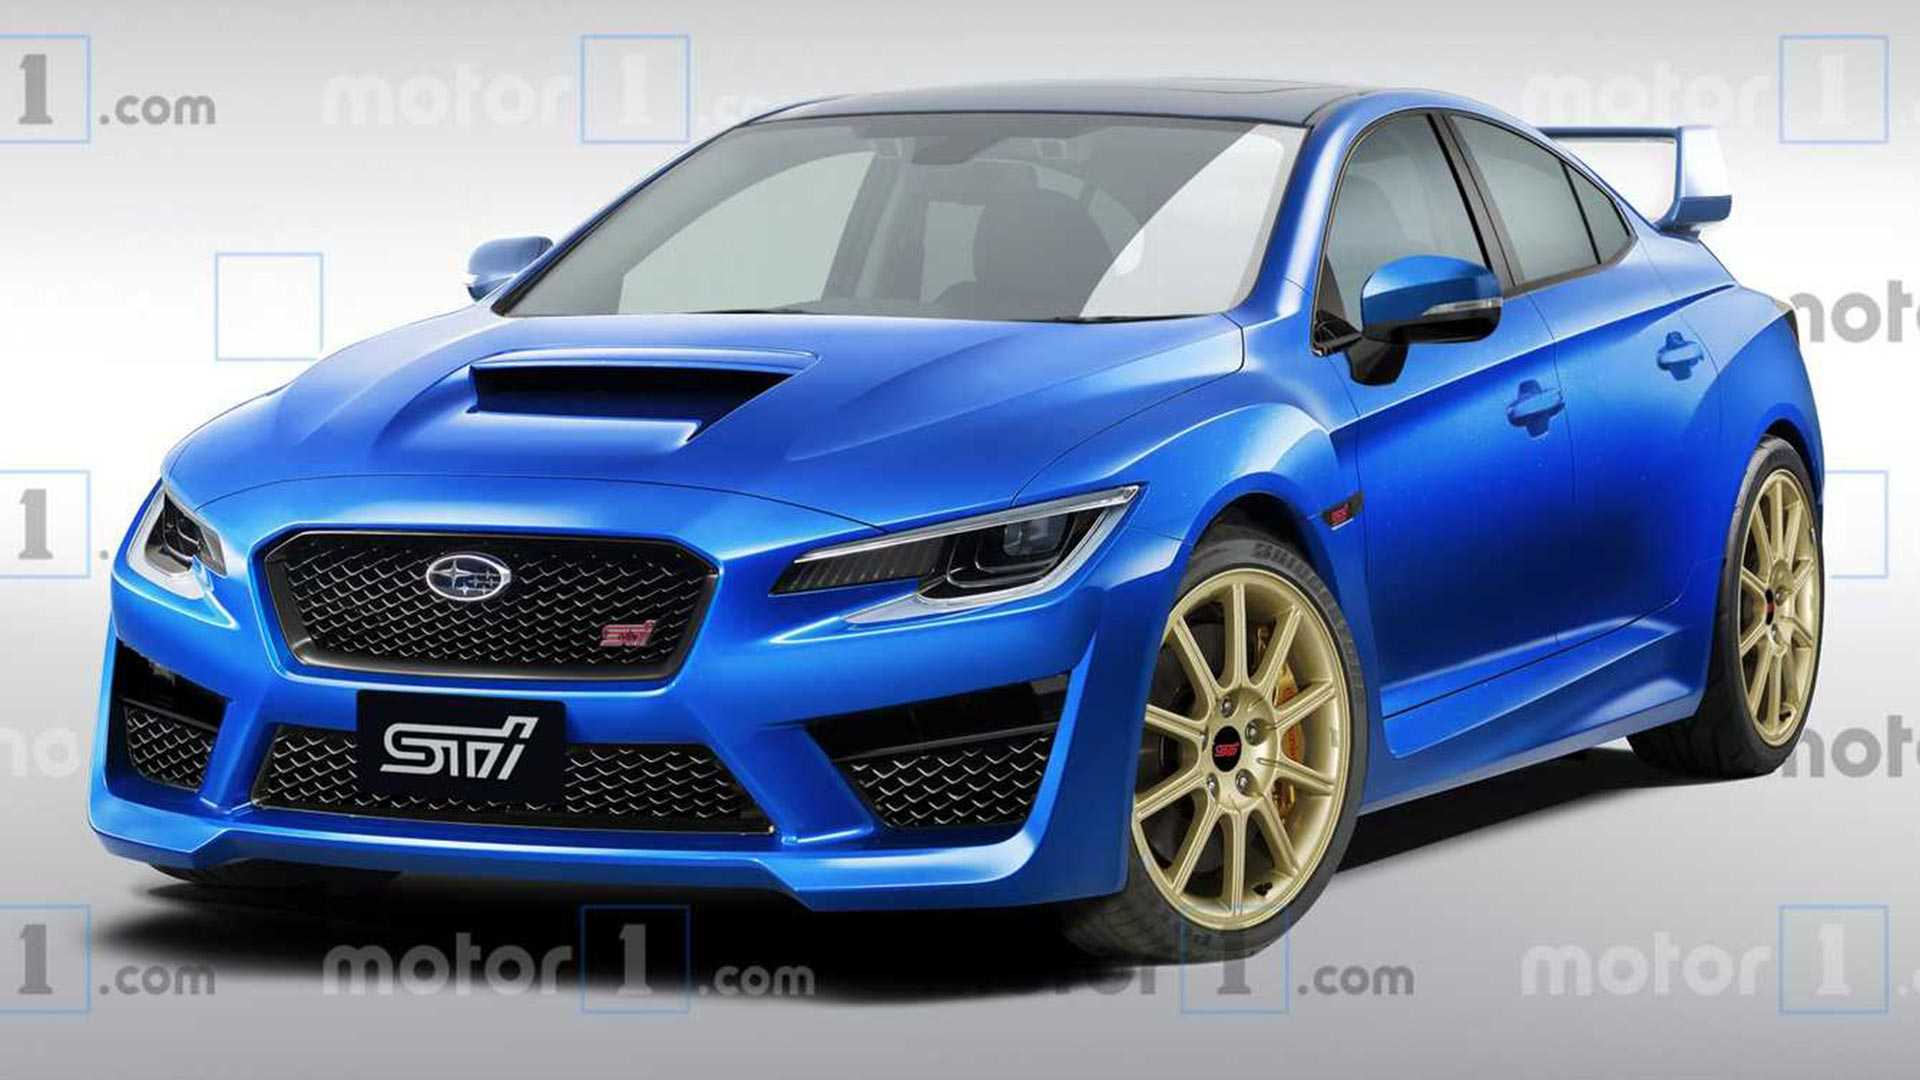 91 The Subaru Wrx 2020 Concept Configurations